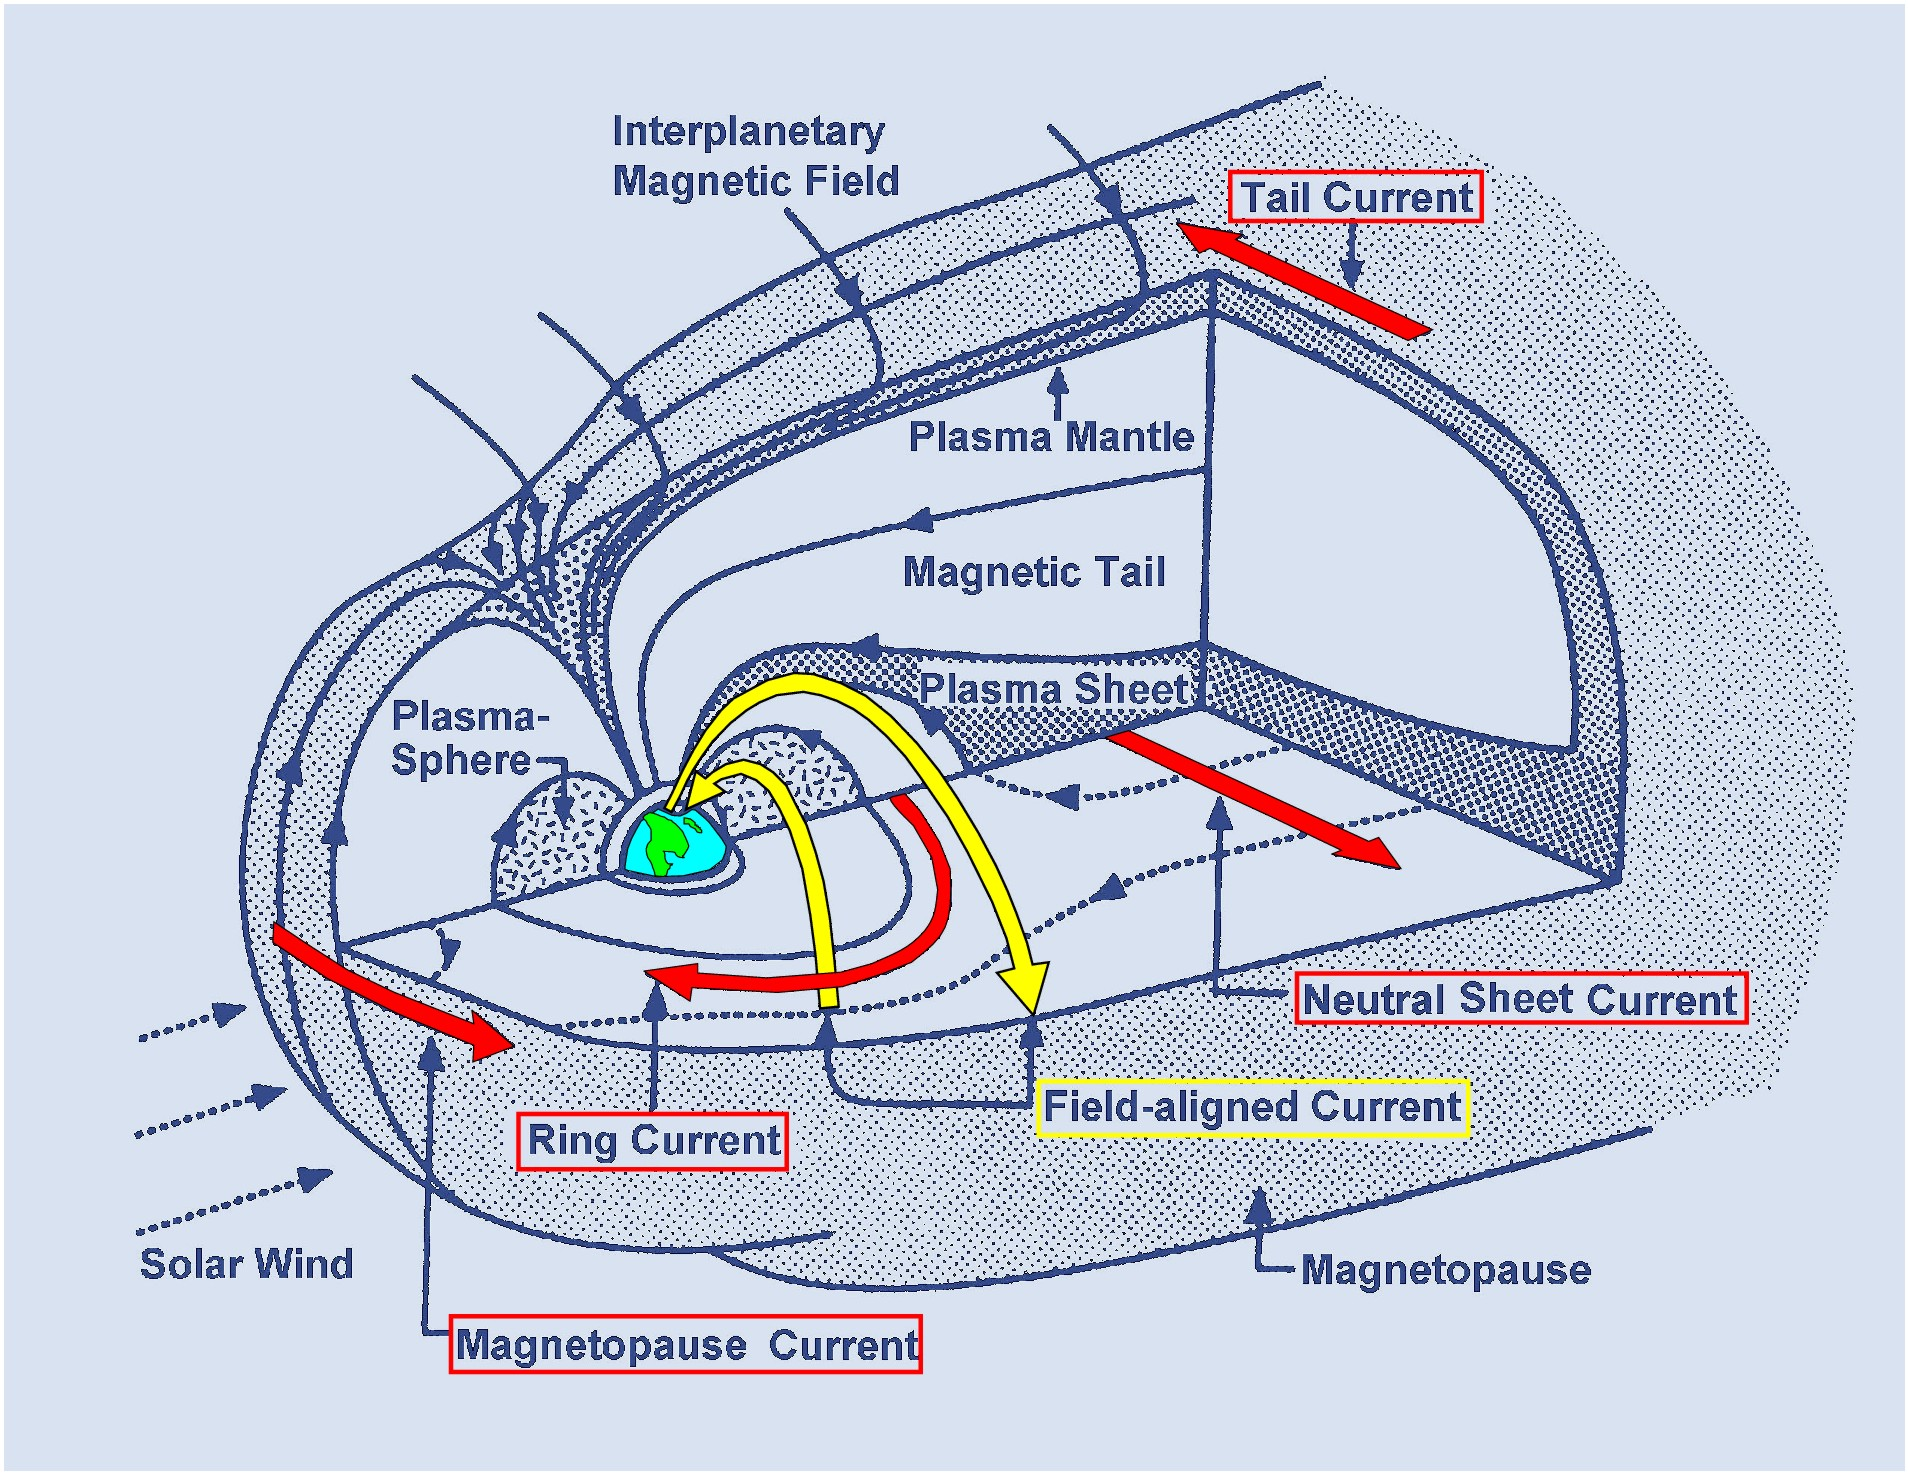 A diagram shows the structures of the Earth's magentosphere